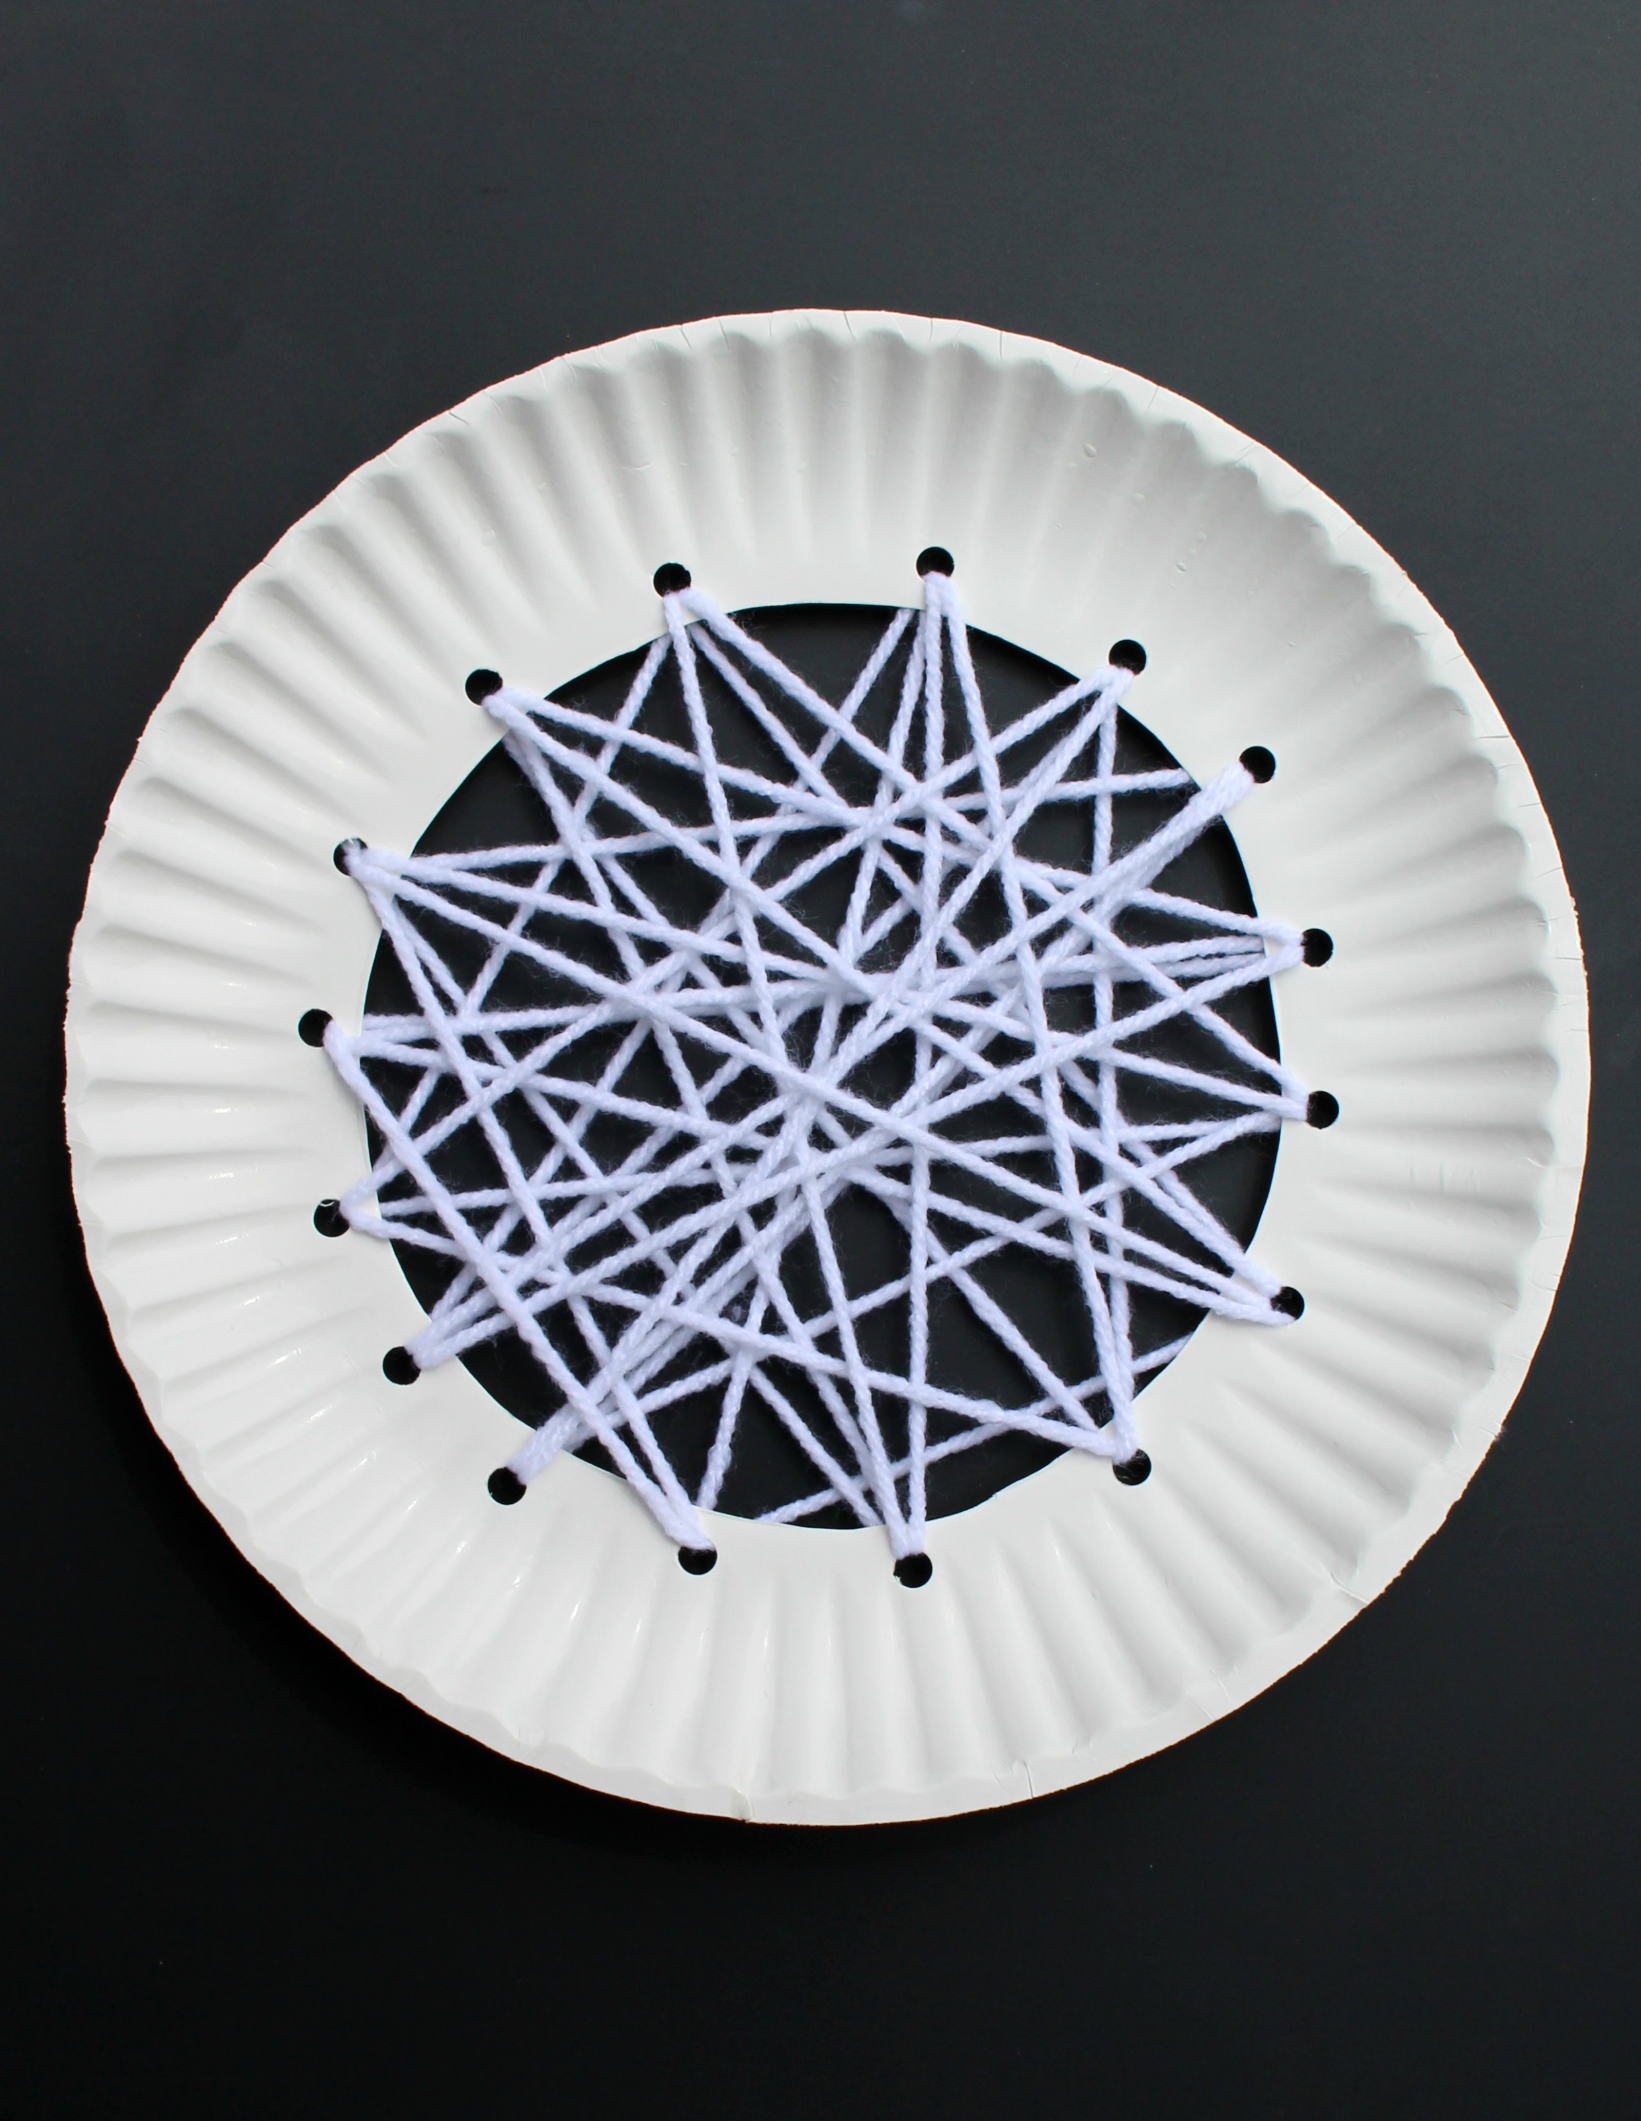 Apple Craft That Works on Fine Motor Skills - White Yarn Weaving in the Middle of the Plate